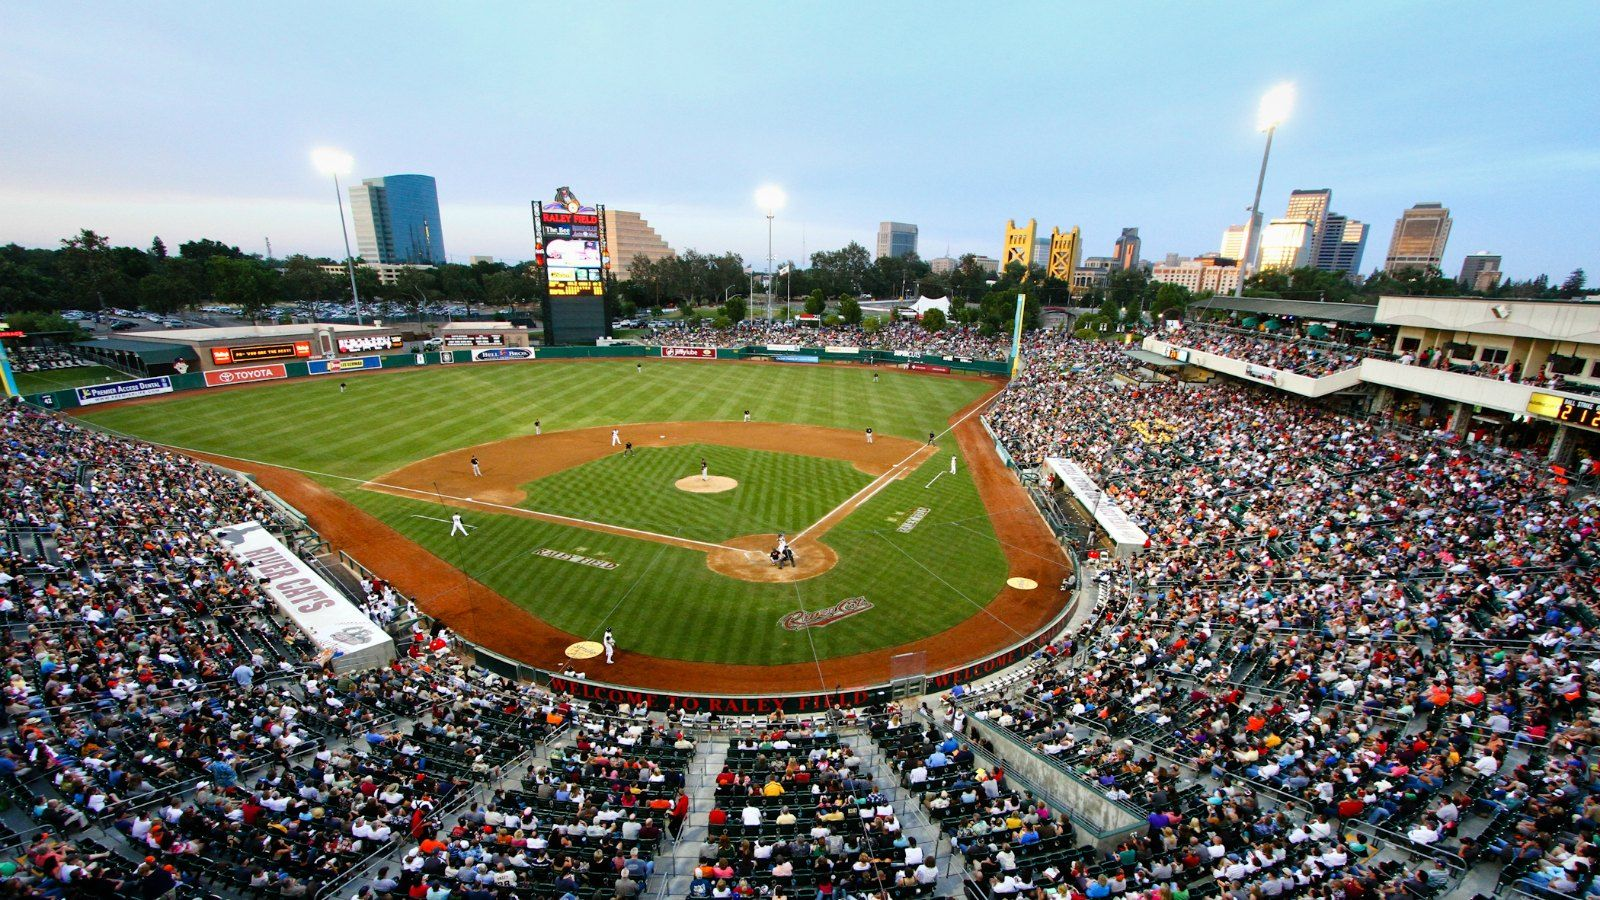 Things to Do in Sacramento - River Cats Baseball